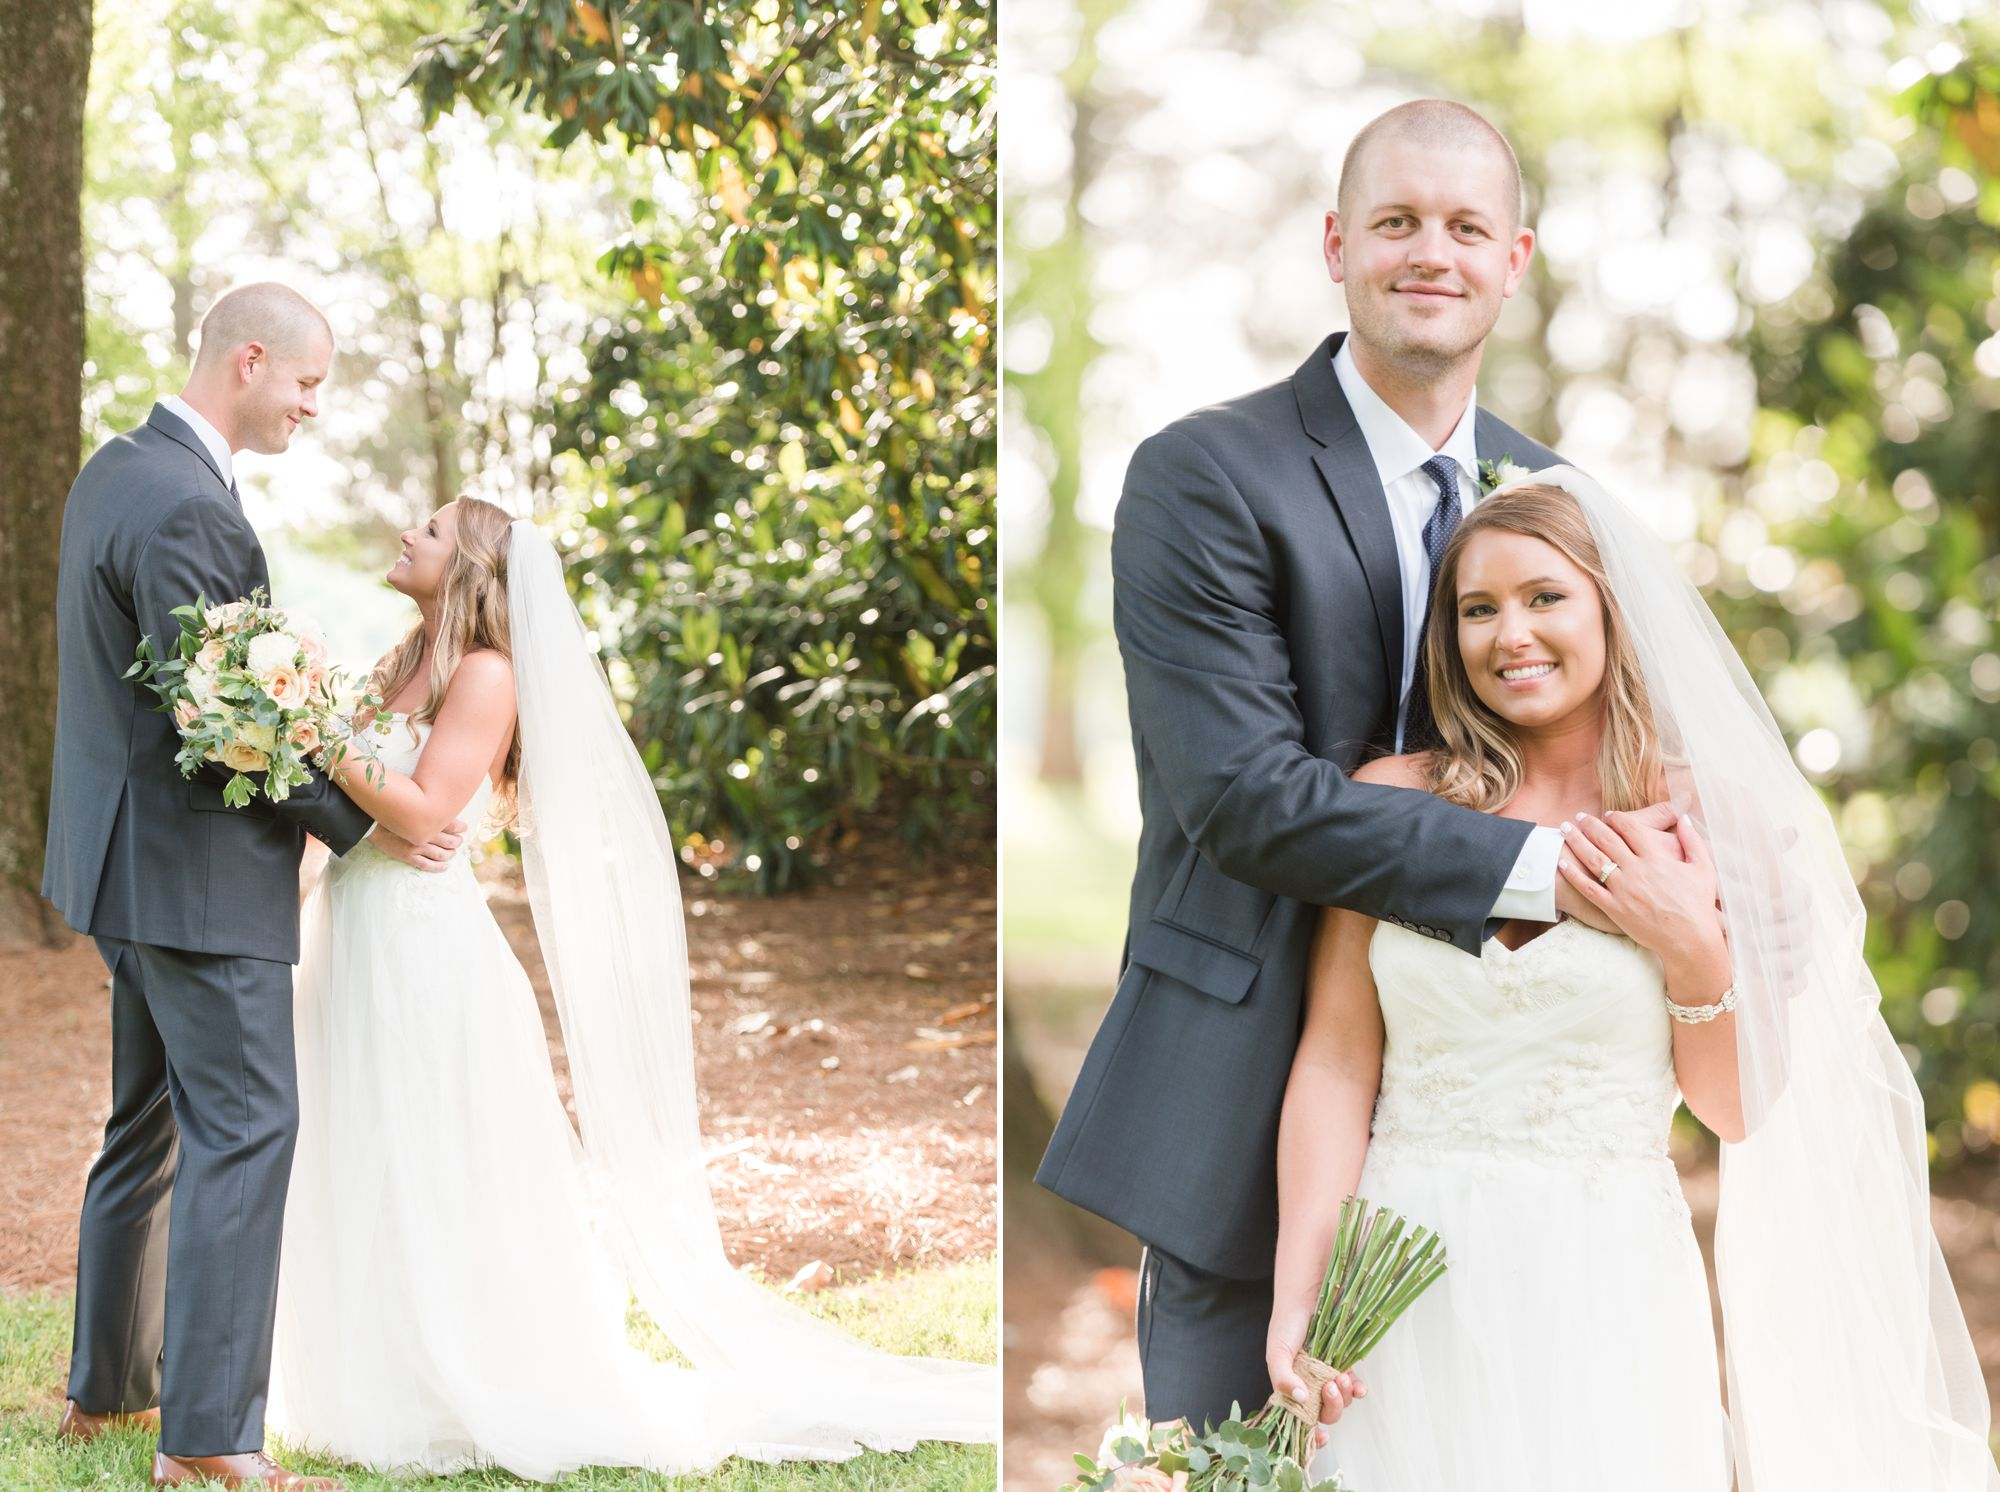 beaver-dam-house-davidson-nc-wedding-photos 76